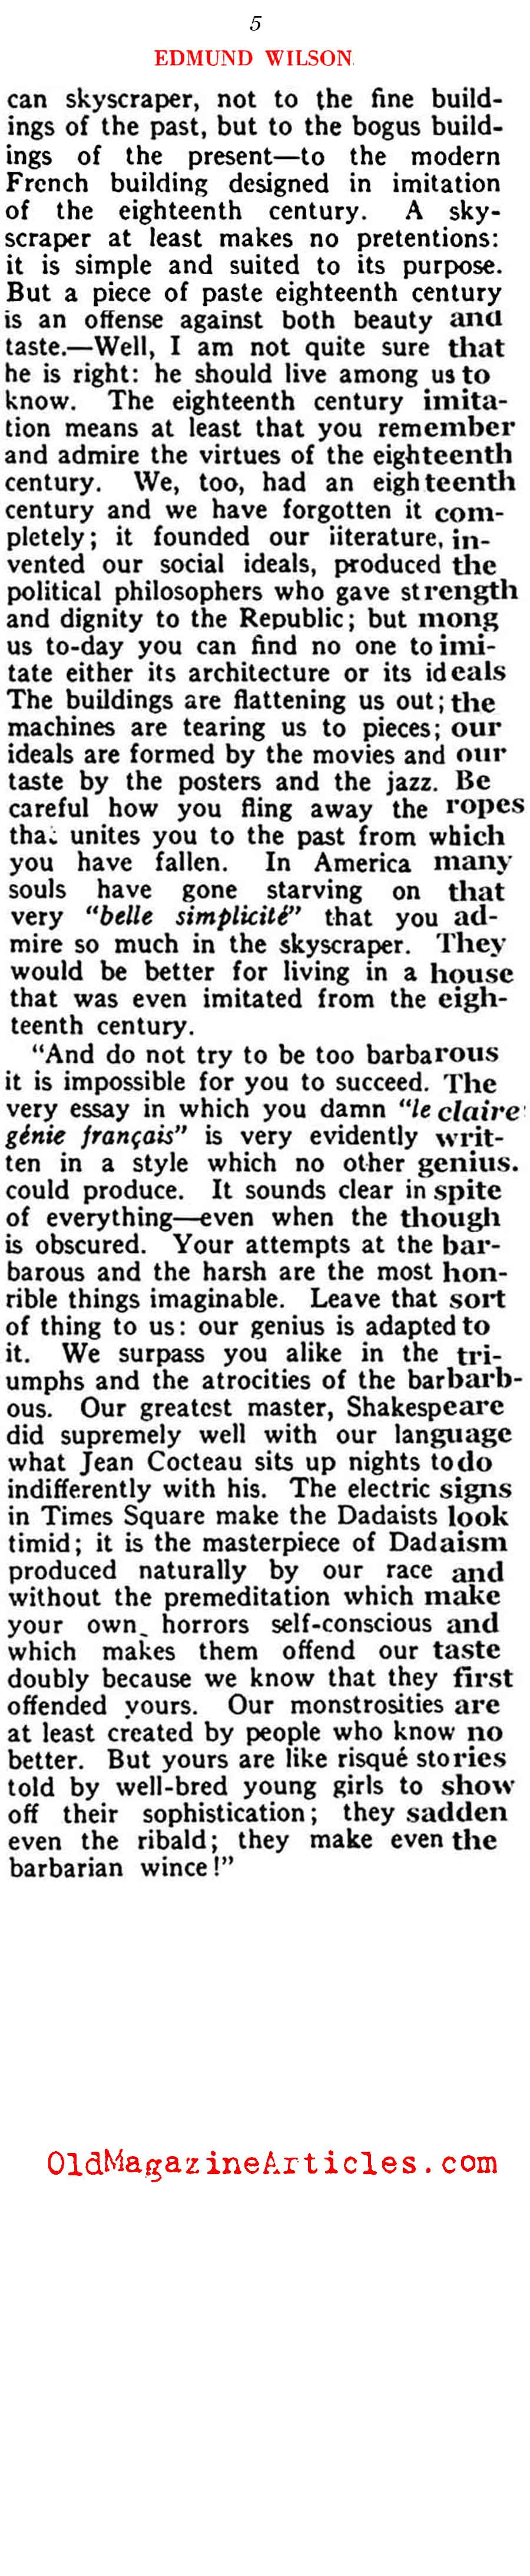 Paris Dada and Jazz (Vanity Fair Magazine, 1922)